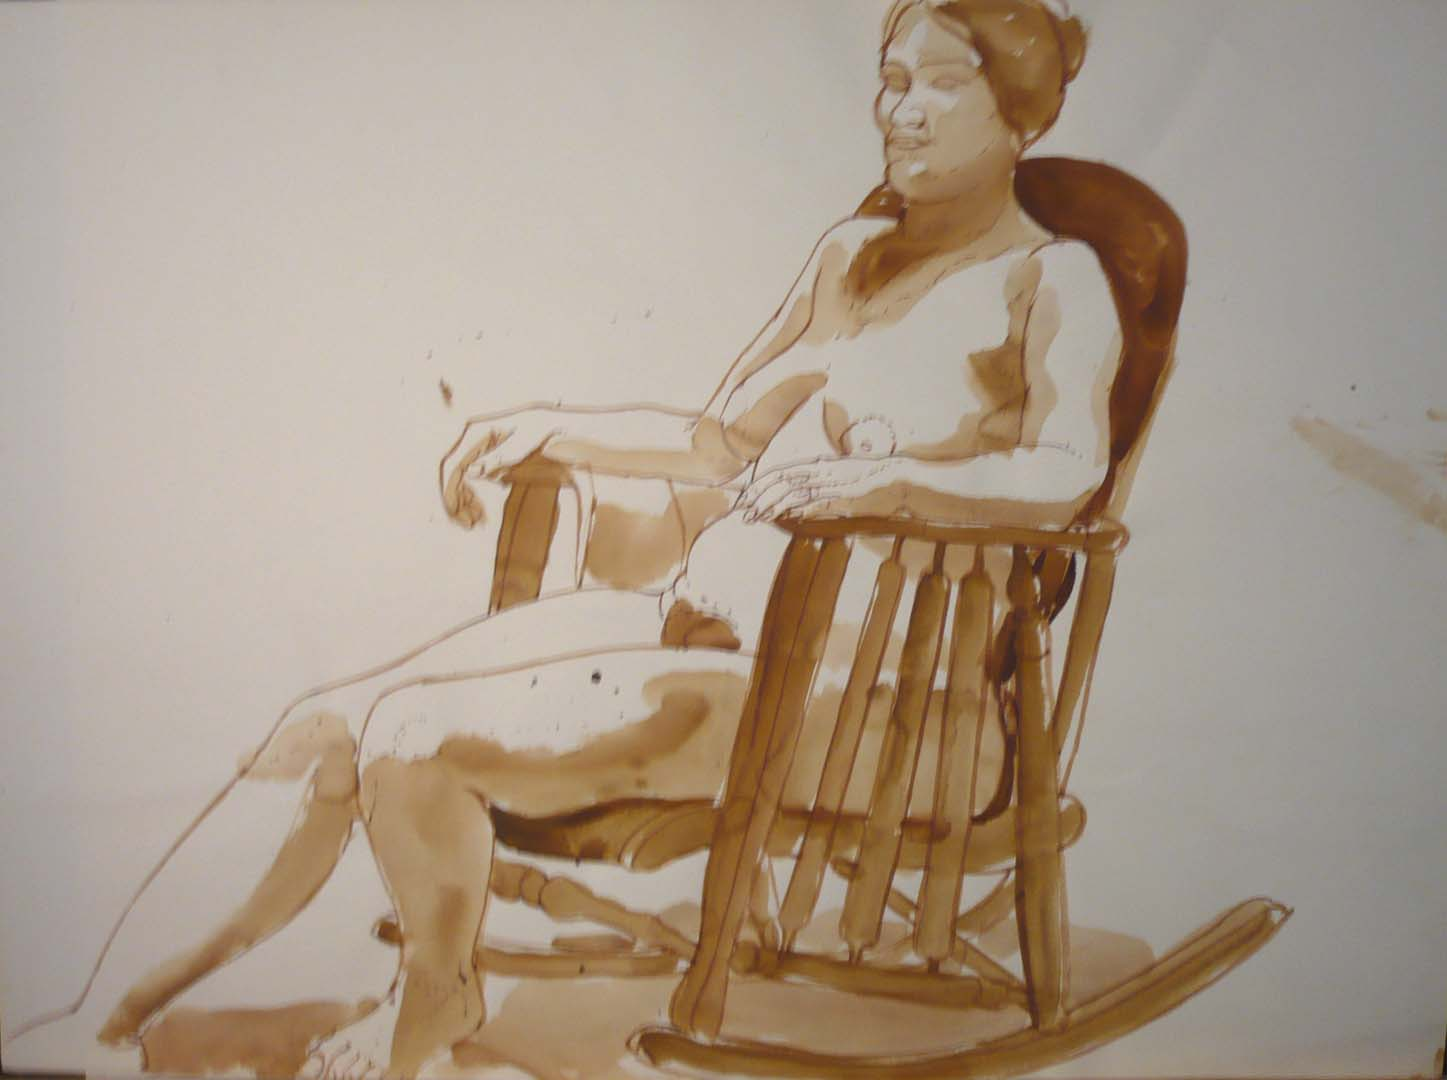 "Female Seated on Rocking Chair Sepia 22"" x 29.875"""